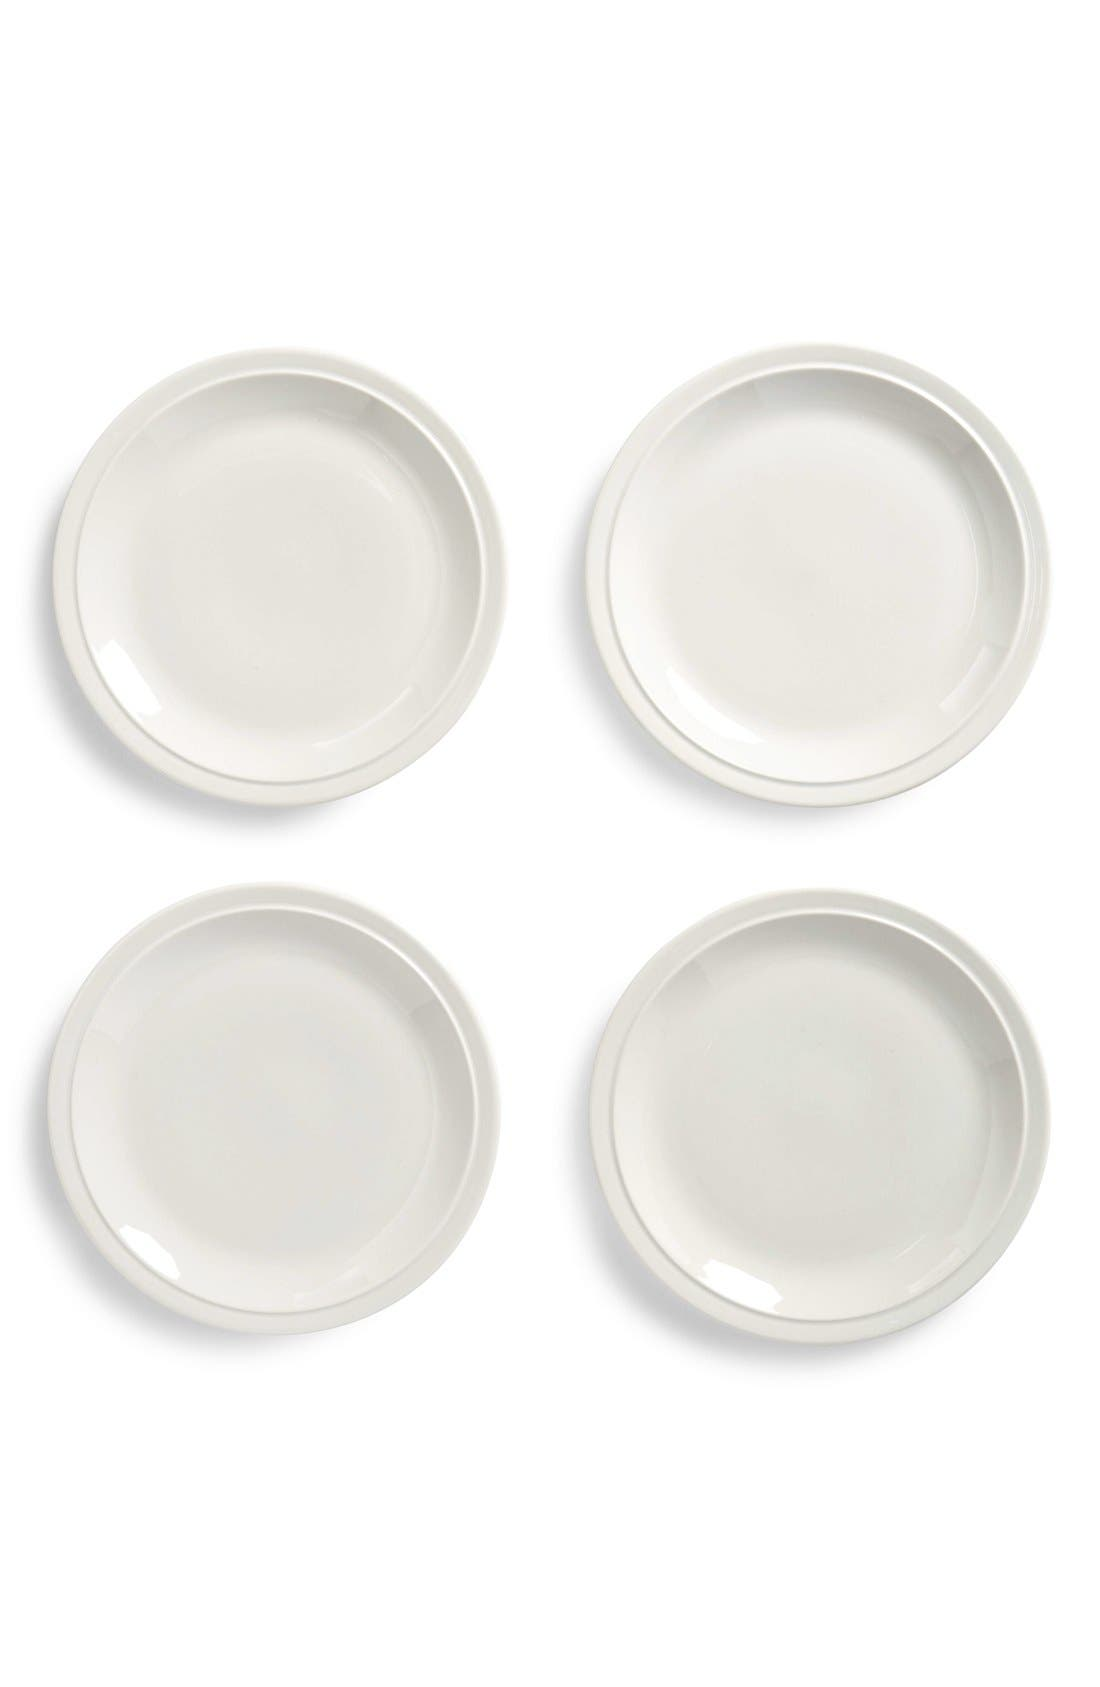 nordstrom at home madrona set of 4 salad plates 32 value - Horderves Plates